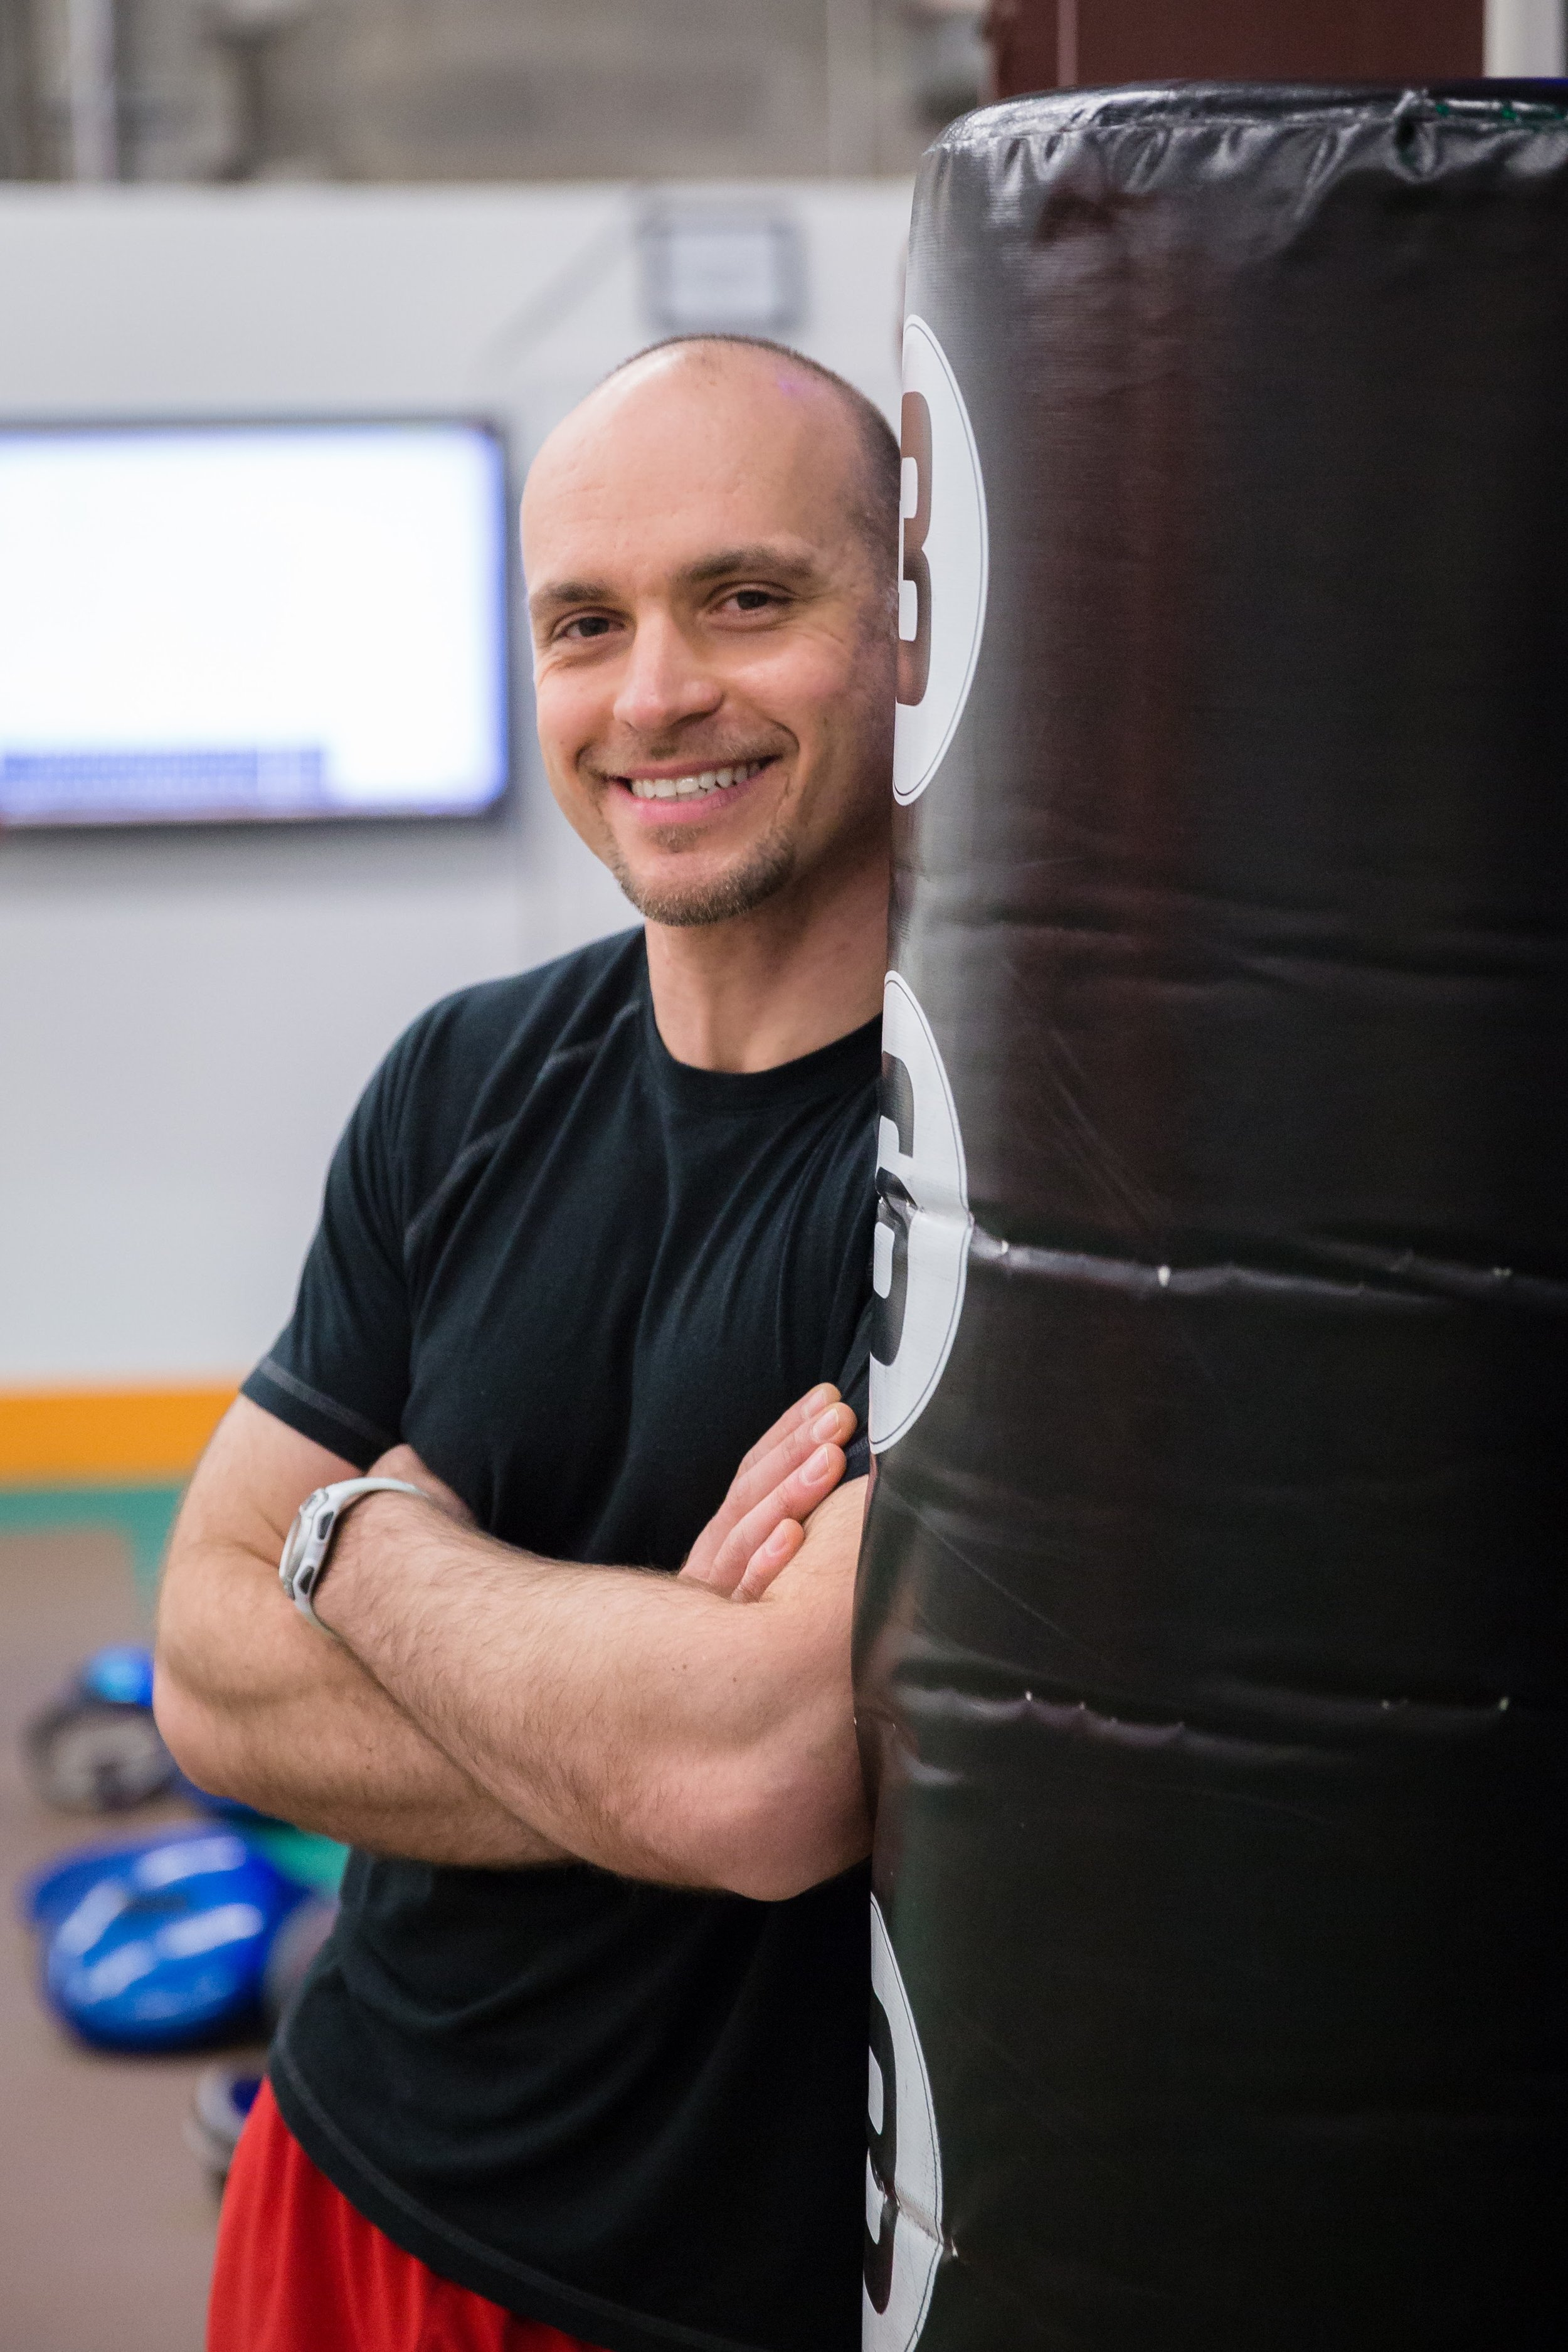 "Robert Jaroszuk | Founder & Owner | Mentor - Rob Jaroszuk is the proud owner and founder of RiseFIT, and has been running his own business for the past ten years. Rob emigrated from Poland when he was 11 years old, as his parents wanted him and his siblings to have a better life. In high school, Rob learned about entrepreneurship and when he started training in karate, he knew that he wanted to somehow combine fitness and business. Rob earned his black belt in Taekwondo and Brazilian Jujitsu (BJJ) but after several injuries, he knew he had to start training differently if wanted to stay in shape for life. His passion and expertise for performance training along with his drive and business sense lead him to start his own unique fitness business. Rob's passion and training style caught on, and eventually he outgrew his former location and brought RiseFit to its current ""warehouse"" which combines both specialized equipment, as well as ""old school"" techniques, and a pristine work out environment.Rob is a consummate reader and has educated himself on the topics of personal mastery and how elite people function. His interest in this led him to become certified in NLP (Neuro-Linguistic Programing), NAP (Neuro-Associative Programing), hypnosis, and trauma healing to name a few. His expertise allows him deeper insight into how the subconscious mind works; how people create associations; and how they can reprogram them and create new ones. Rob firmly believes that staying younger longer is truly within our reach, when we learn how to support our metabolism. Rob uses this knowledge and unique skills to help people grow and evolve to their next desired level, break-through old patterns, and heal the past to create a much longer, brighter future!Robert has numerous certifications including:Purple Belt Jujitsu; Black Belt Taekwondo; Certified Personal Trainer; MovNat (natural human movement); Primal Movement Chains; NLP (Neuro-Linguistic Programming); NAP (Neuro-Associative Programming); Hypnosis; Trauma Healing; LUF REDUX (a Navy SEAL leadership program); VIPR; TRX; DVRT (Sandbag training)"